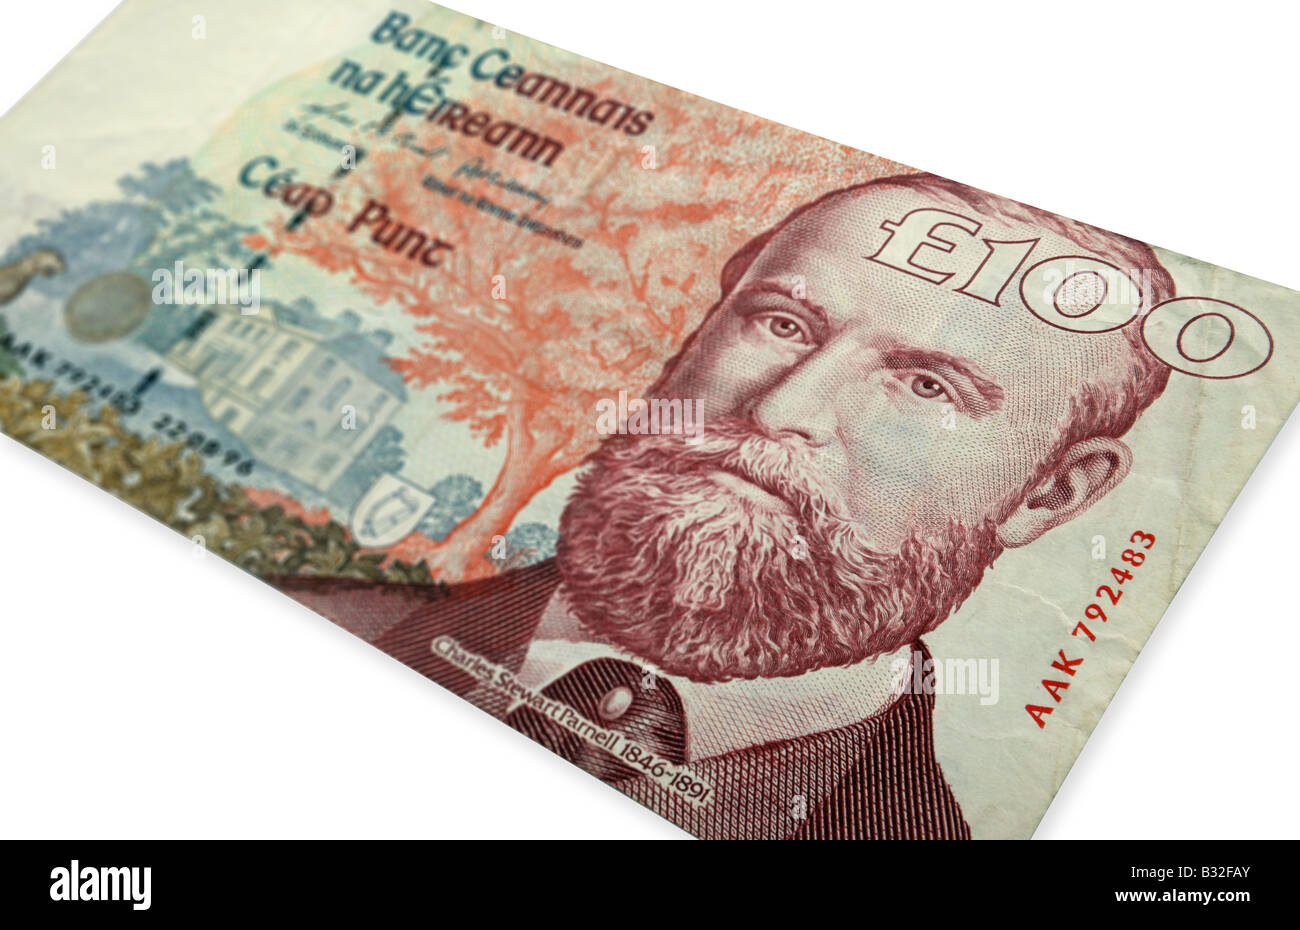 100 pound note stock photos amp 100 pound note stock images